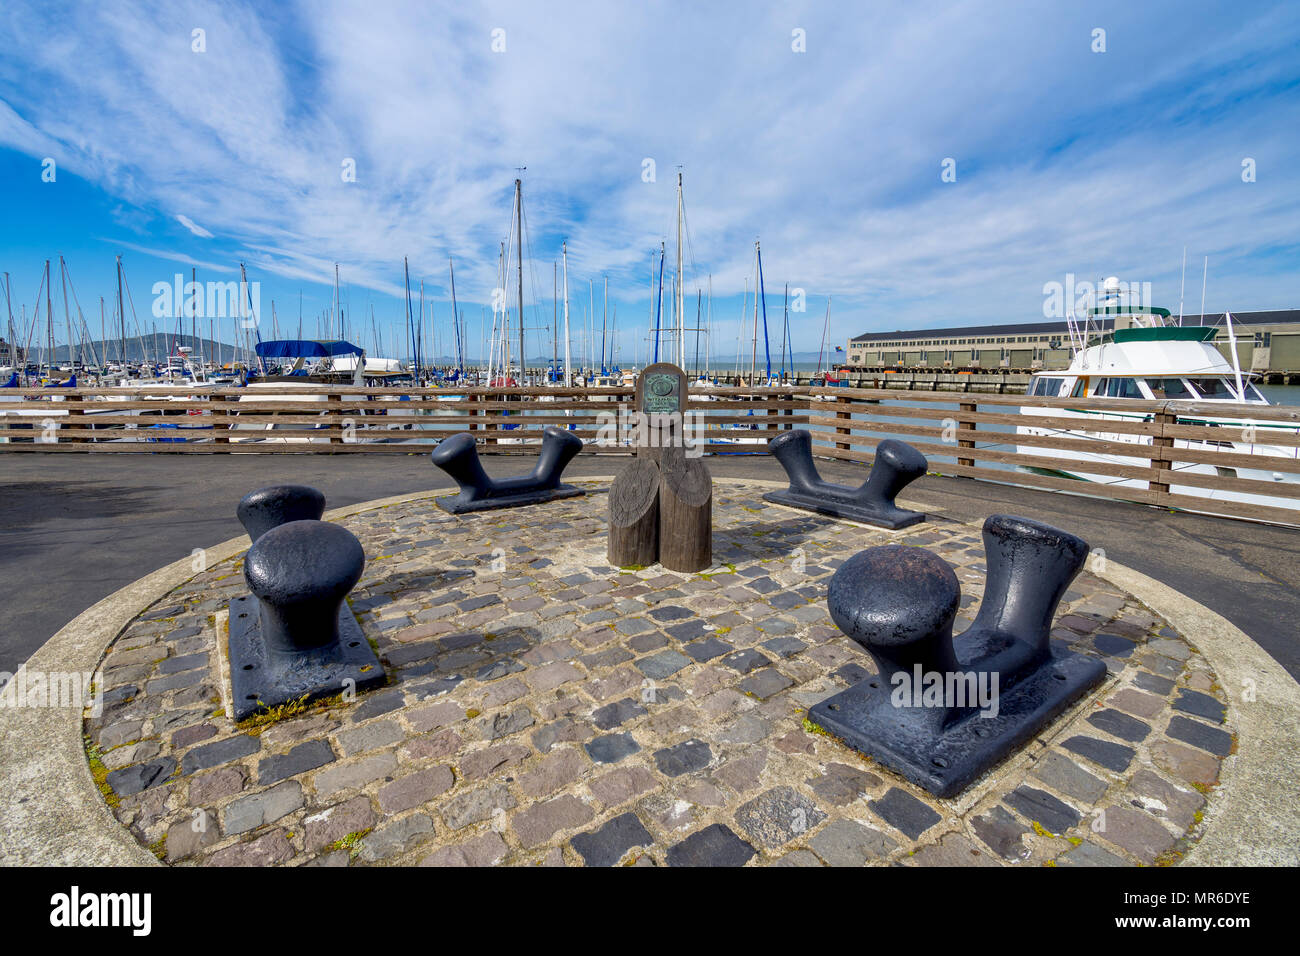 Old ship bollards repositioned on the Sidney Rudy Waterfront Park, Fishermans Wharf, San Francisco, CA, USA. - Stock Image